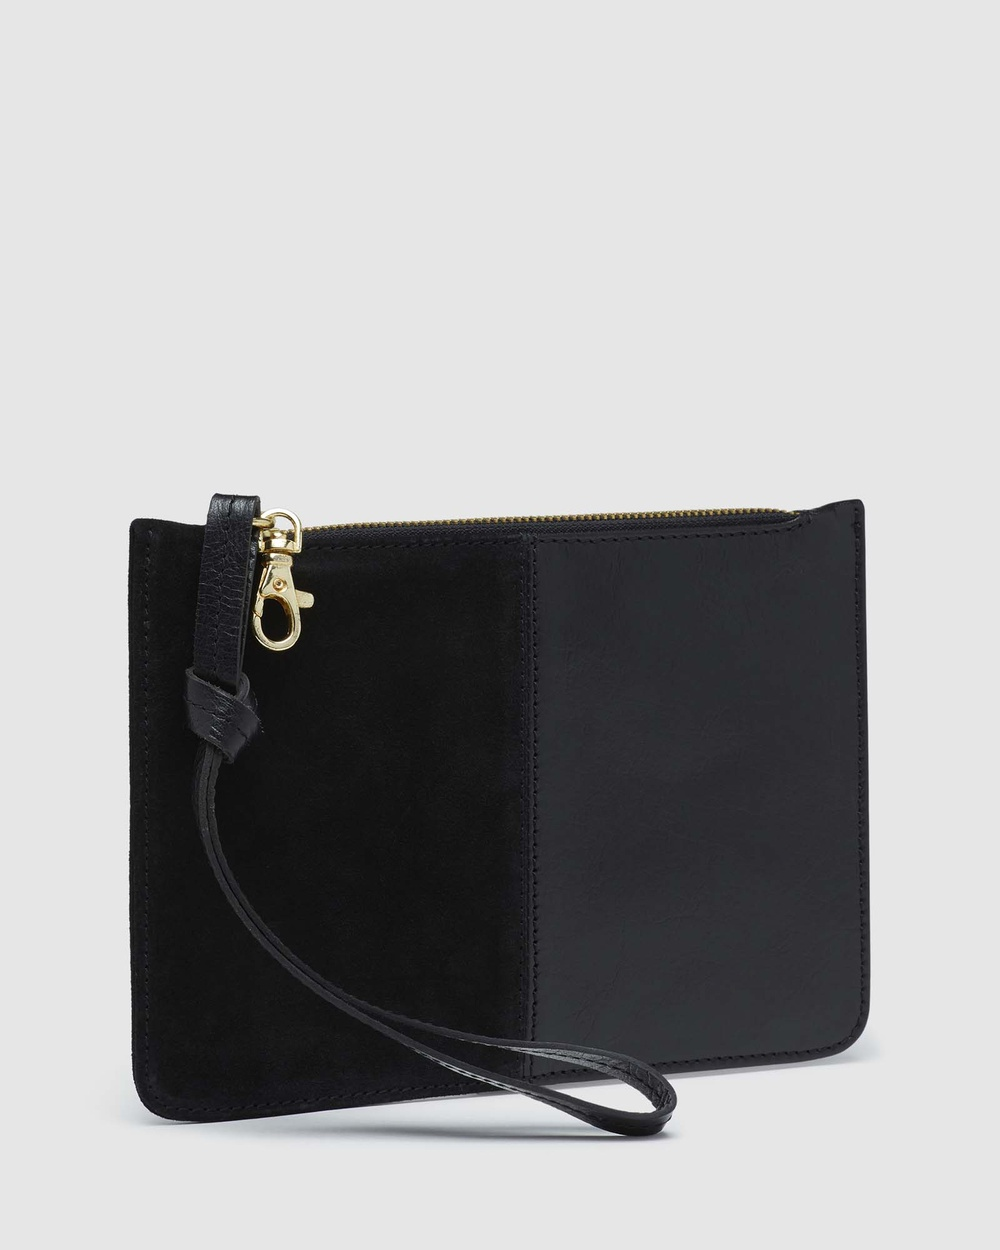 Oxford Adalynne Leather suede Wallet Clutches Black Leather-suede